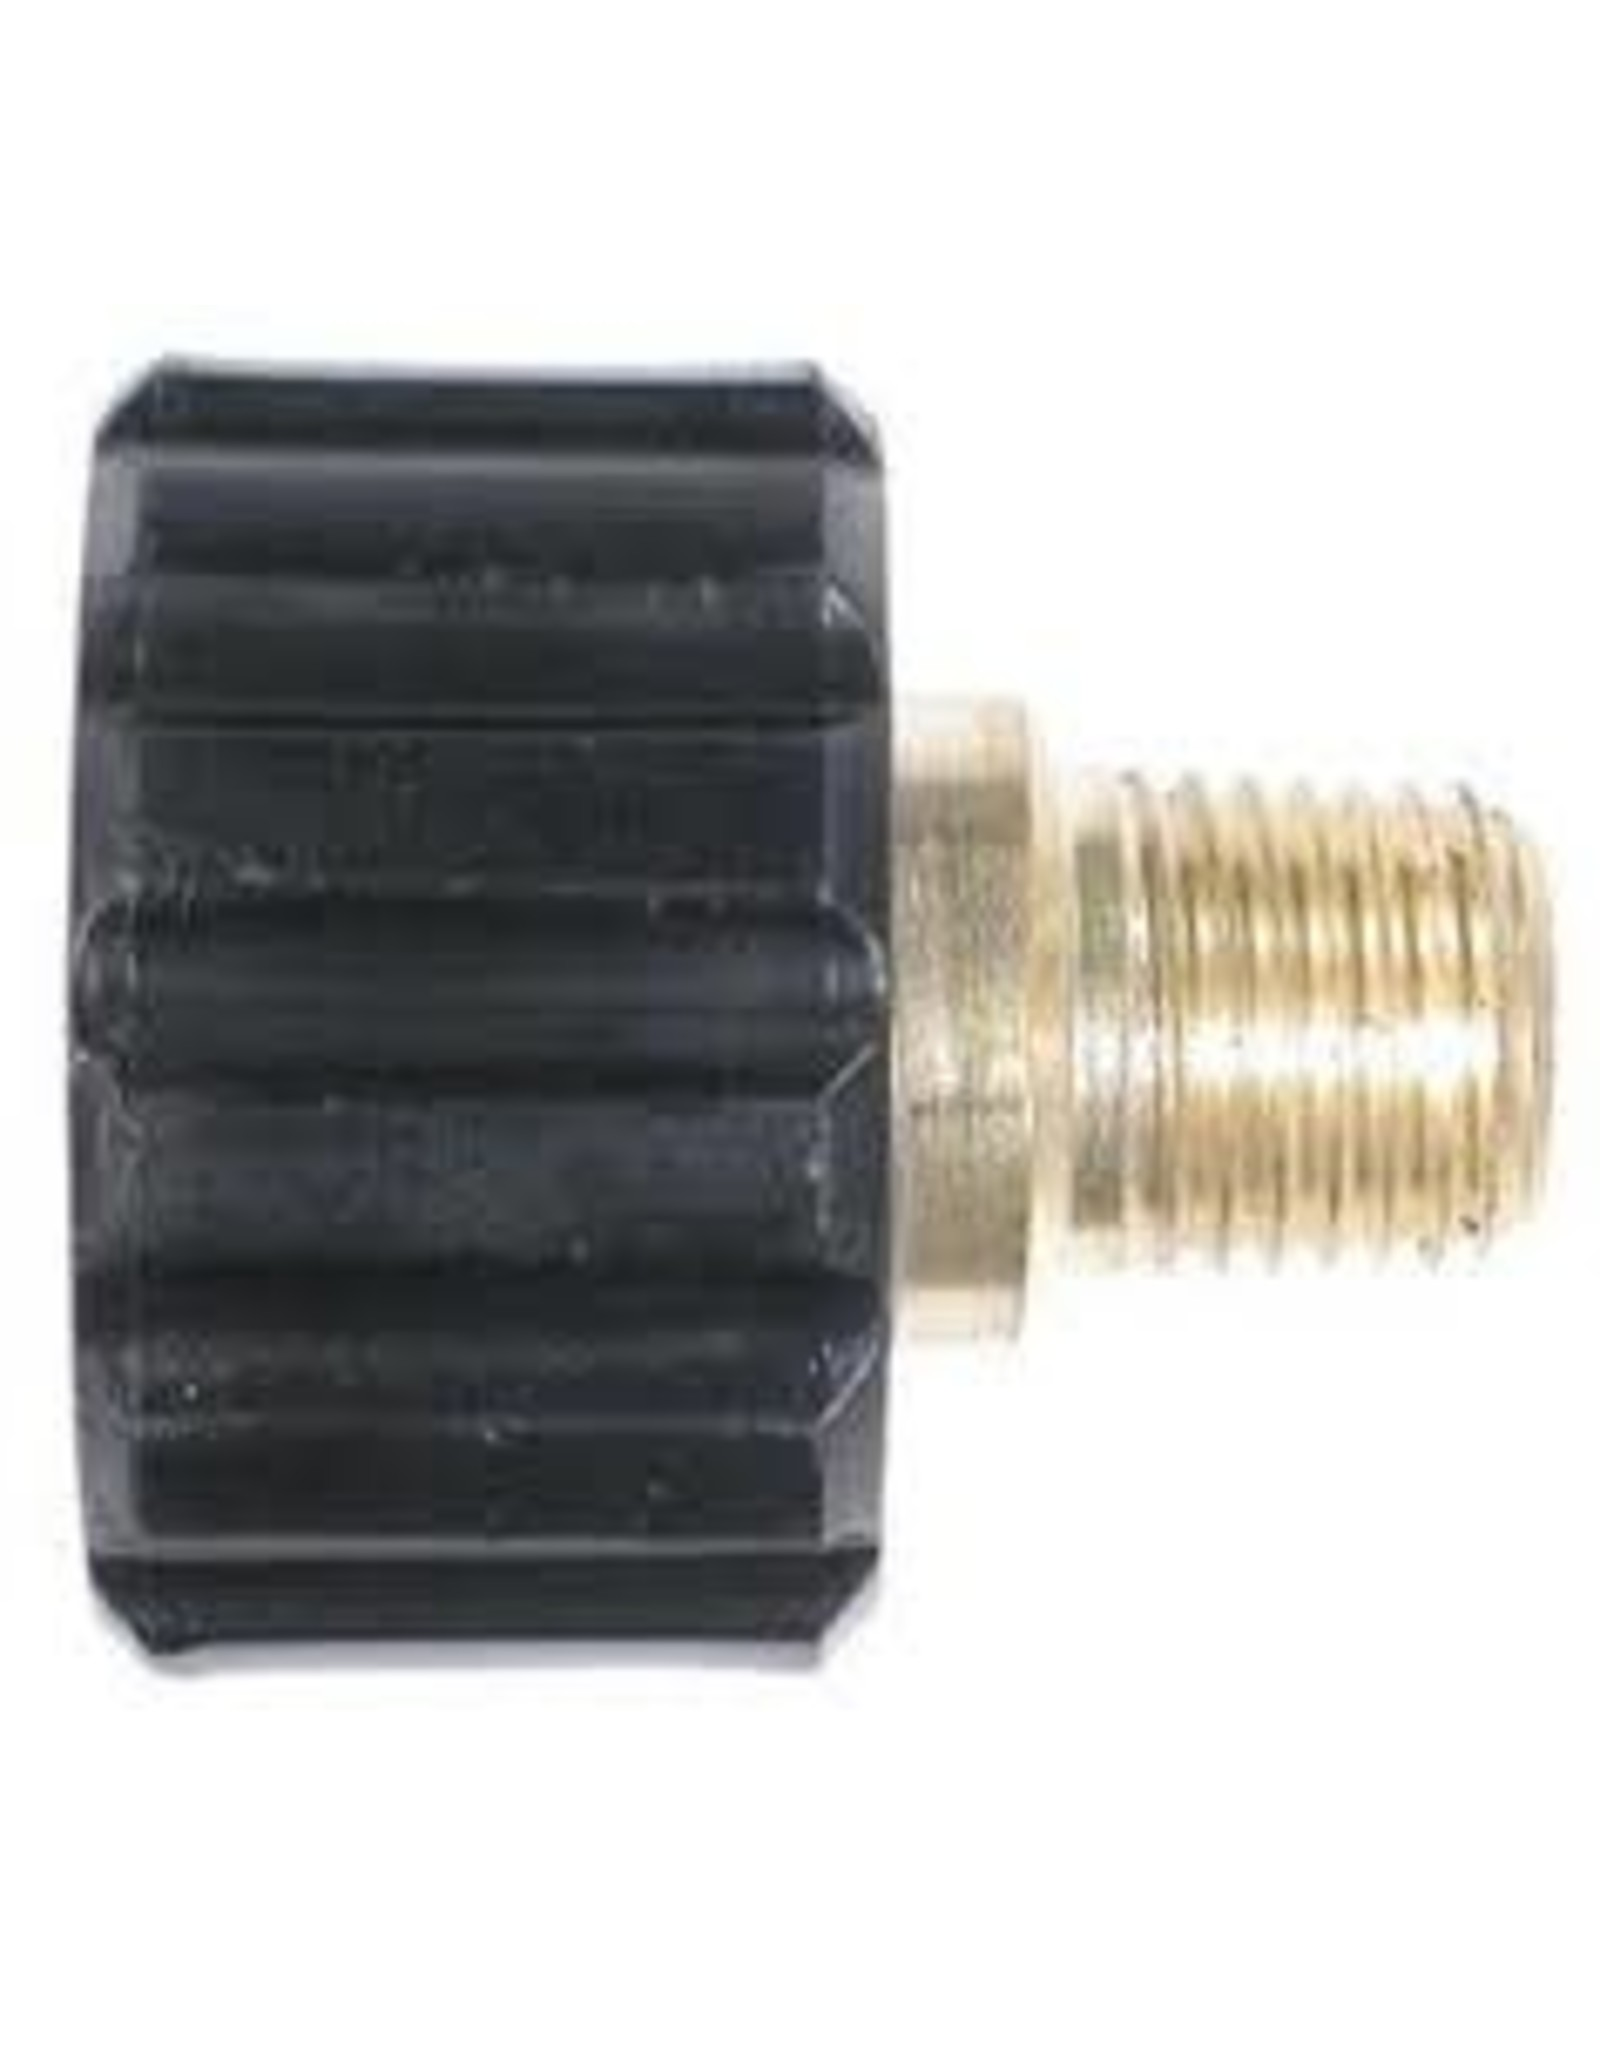 BE 85.300.136 M22 Adapter.